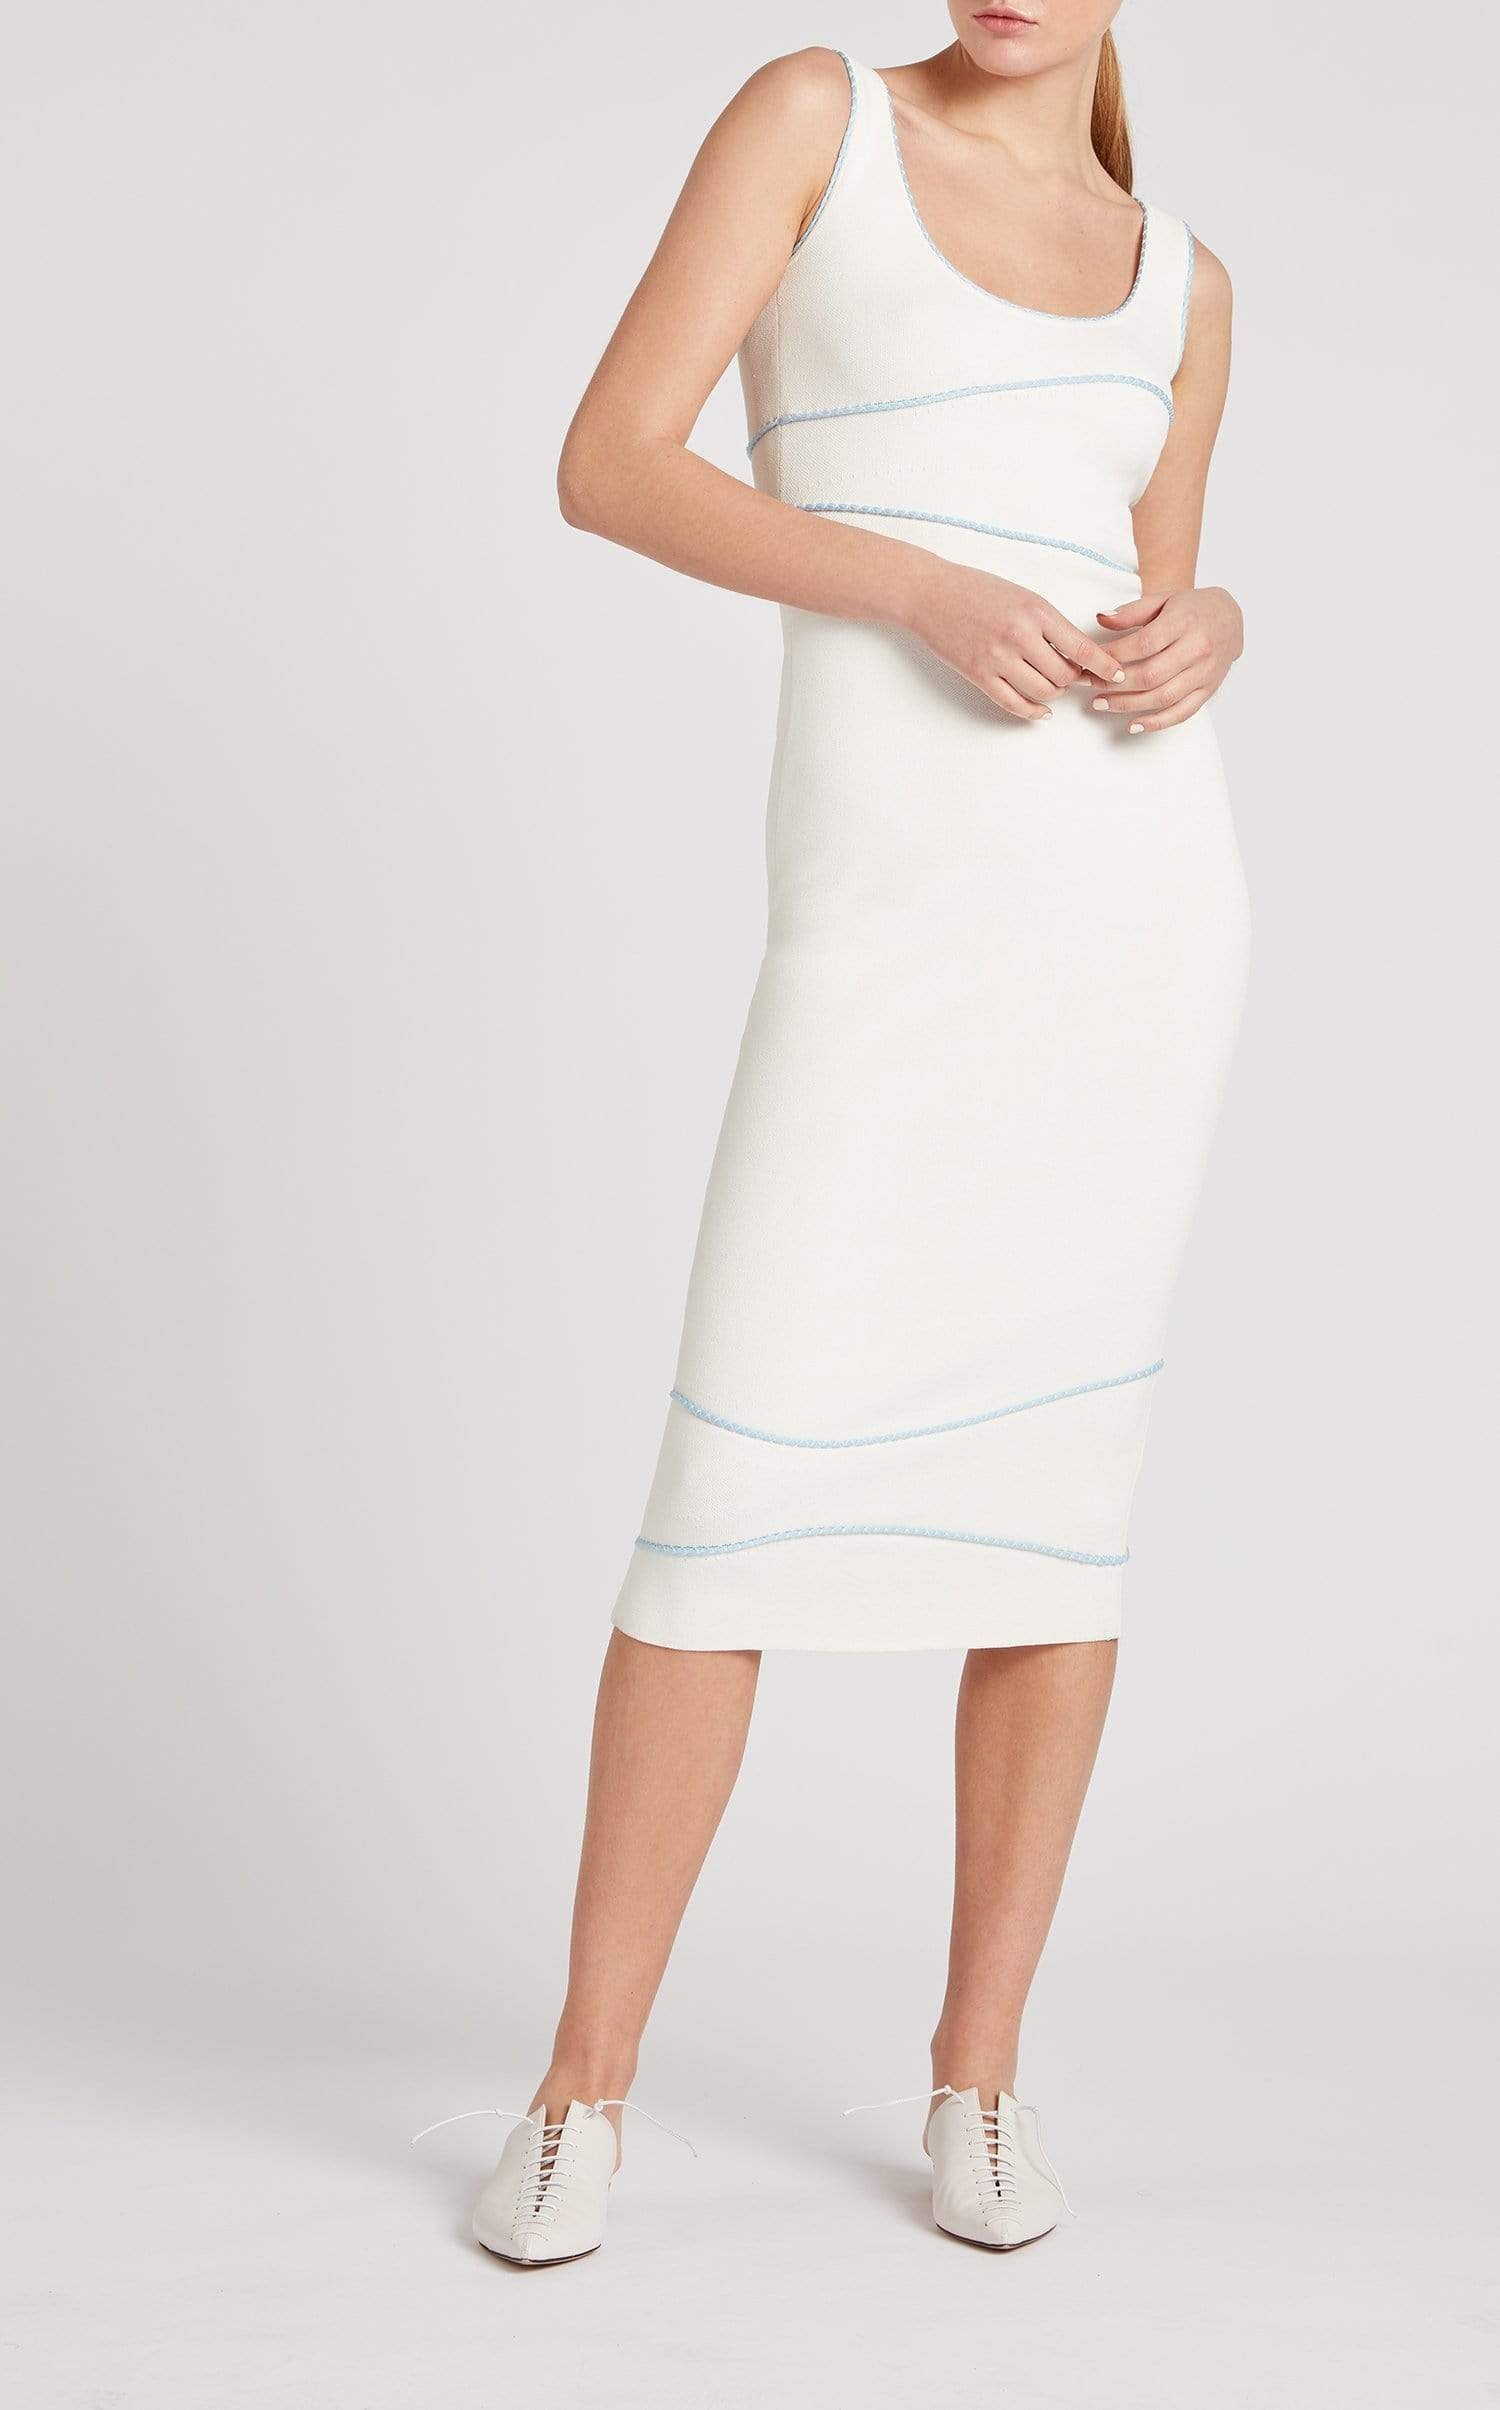 Harbour Dress In White/Ice Blue from Roland Mouret